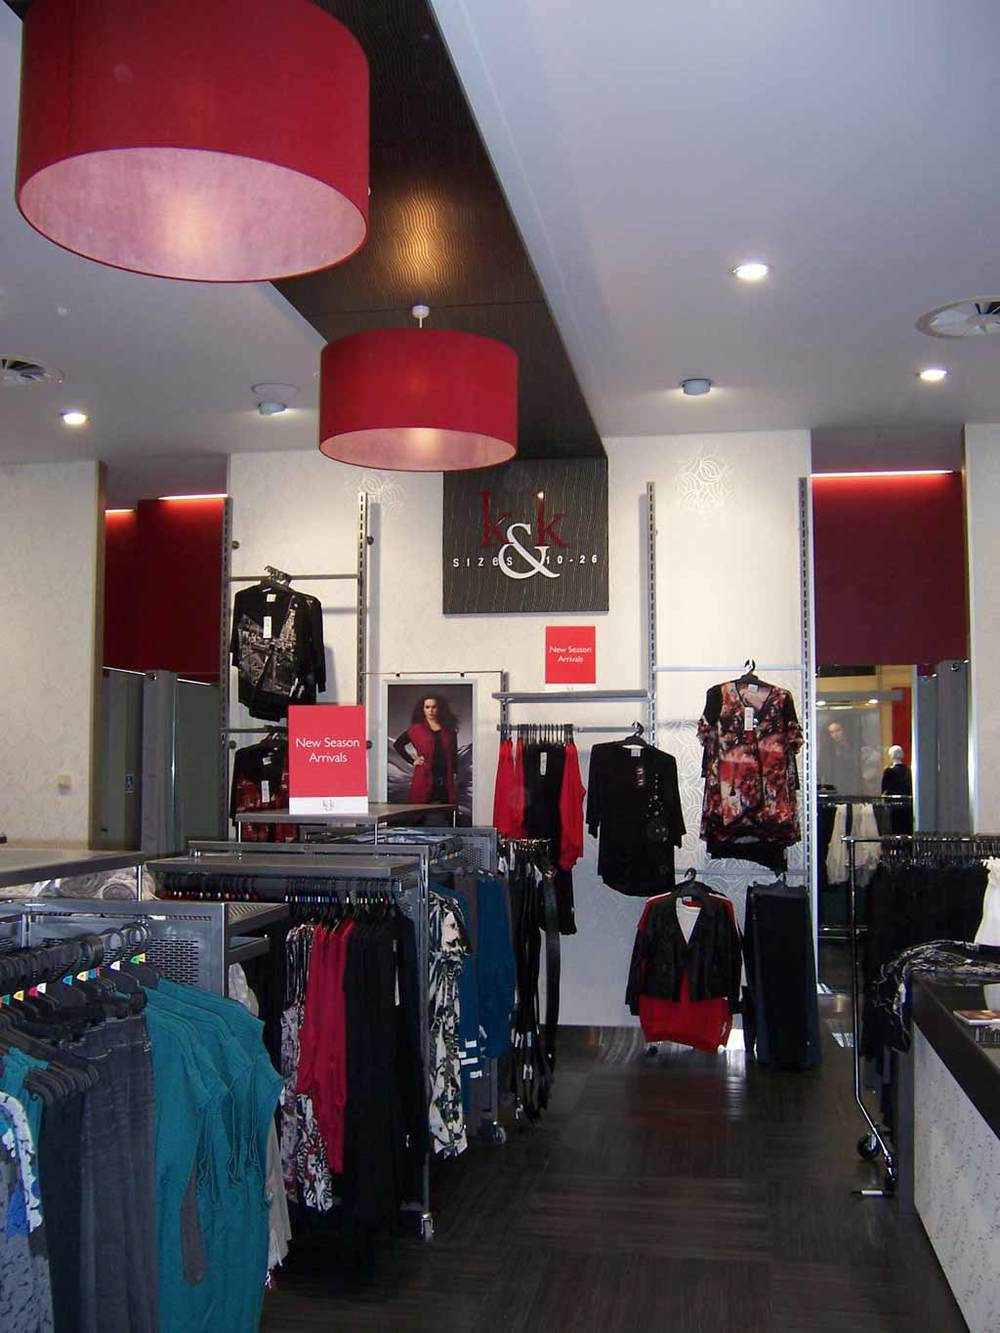 K & K Retail Interior Design Suspended Ceiling Feature Panel And Bright Red Hanging Pendants.